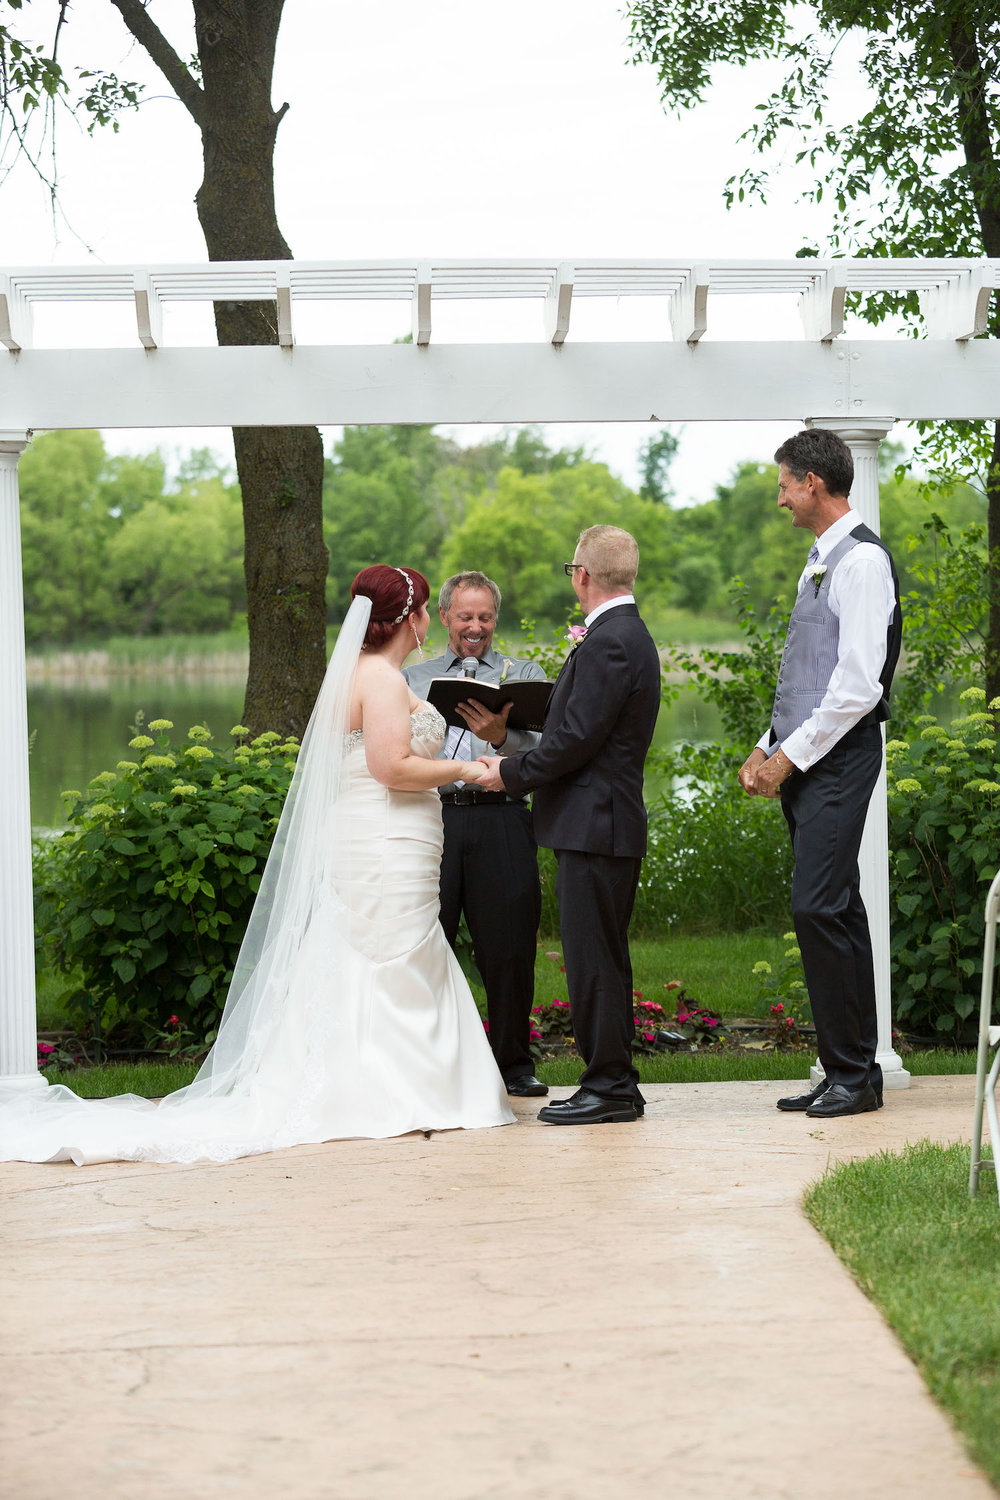 Cindyrella's Garden outdoor ceremony by the lake with a redhead bride,